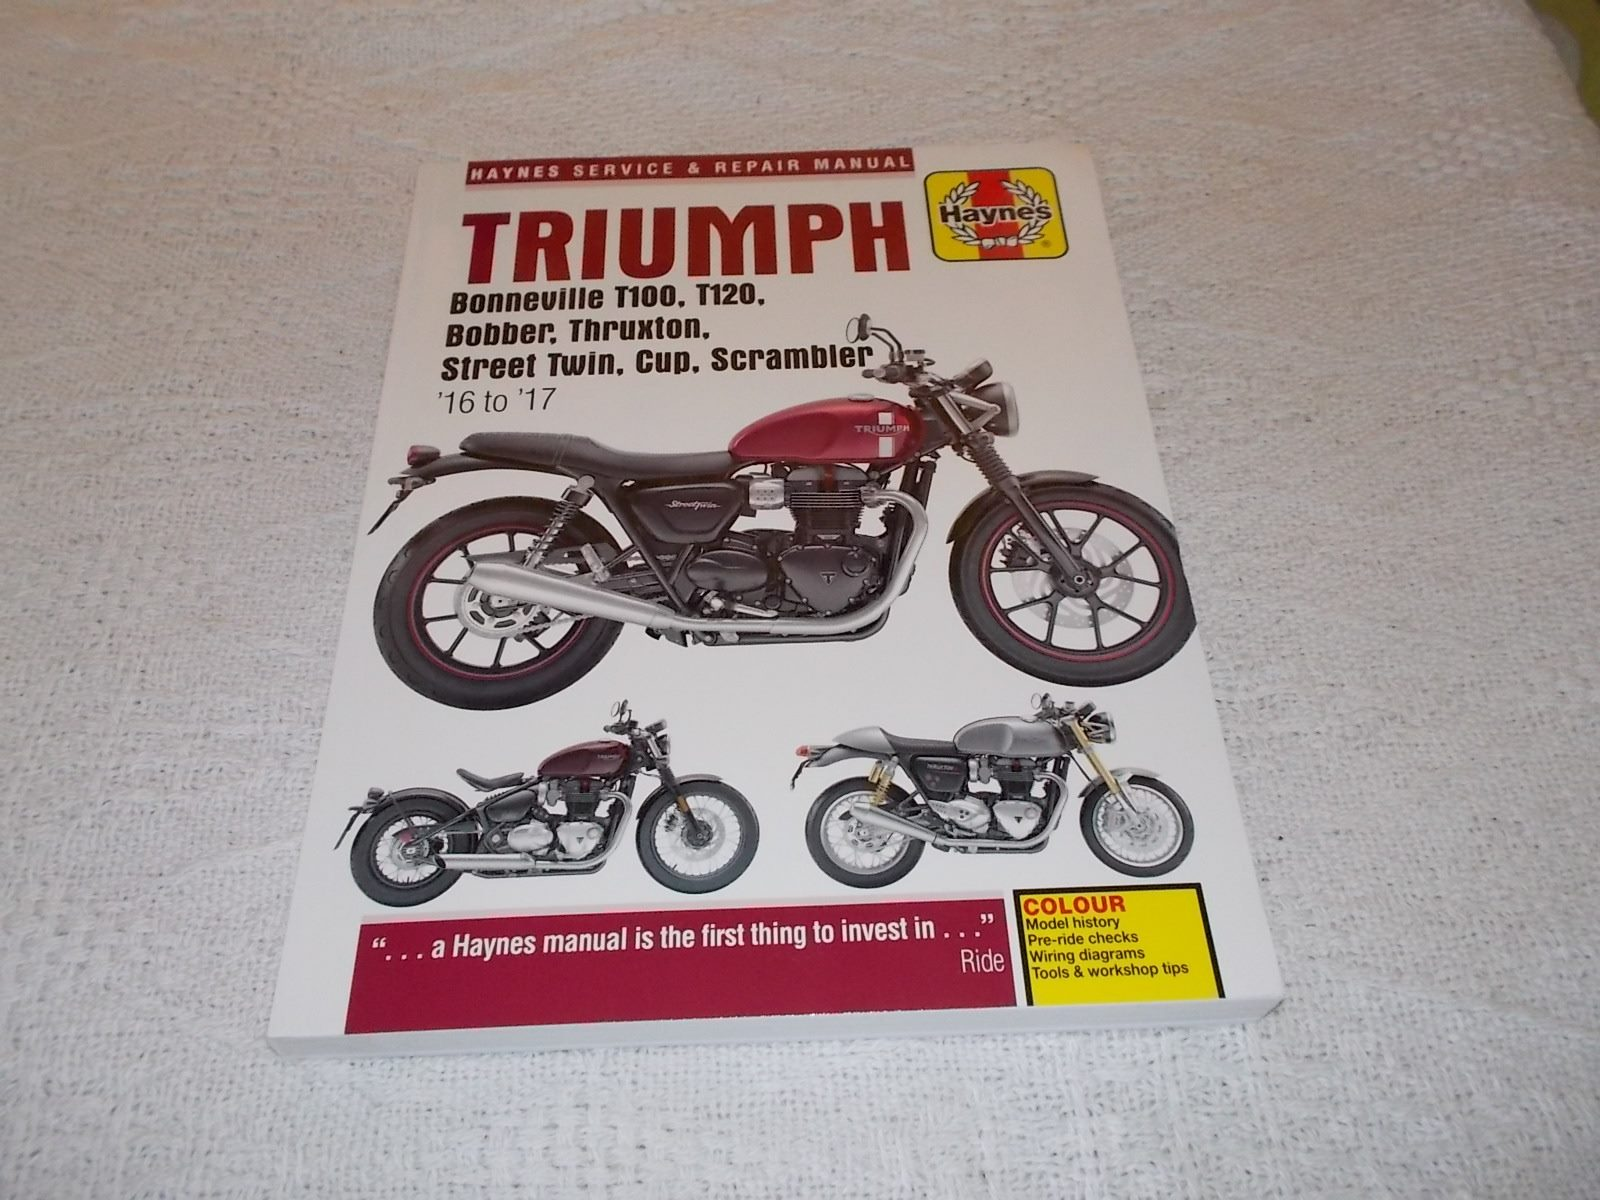 Triumph Bonneville T100 T120 Bobber Thruxton Street Twin Cup Wiring Diagram Click To Enlarge Photo